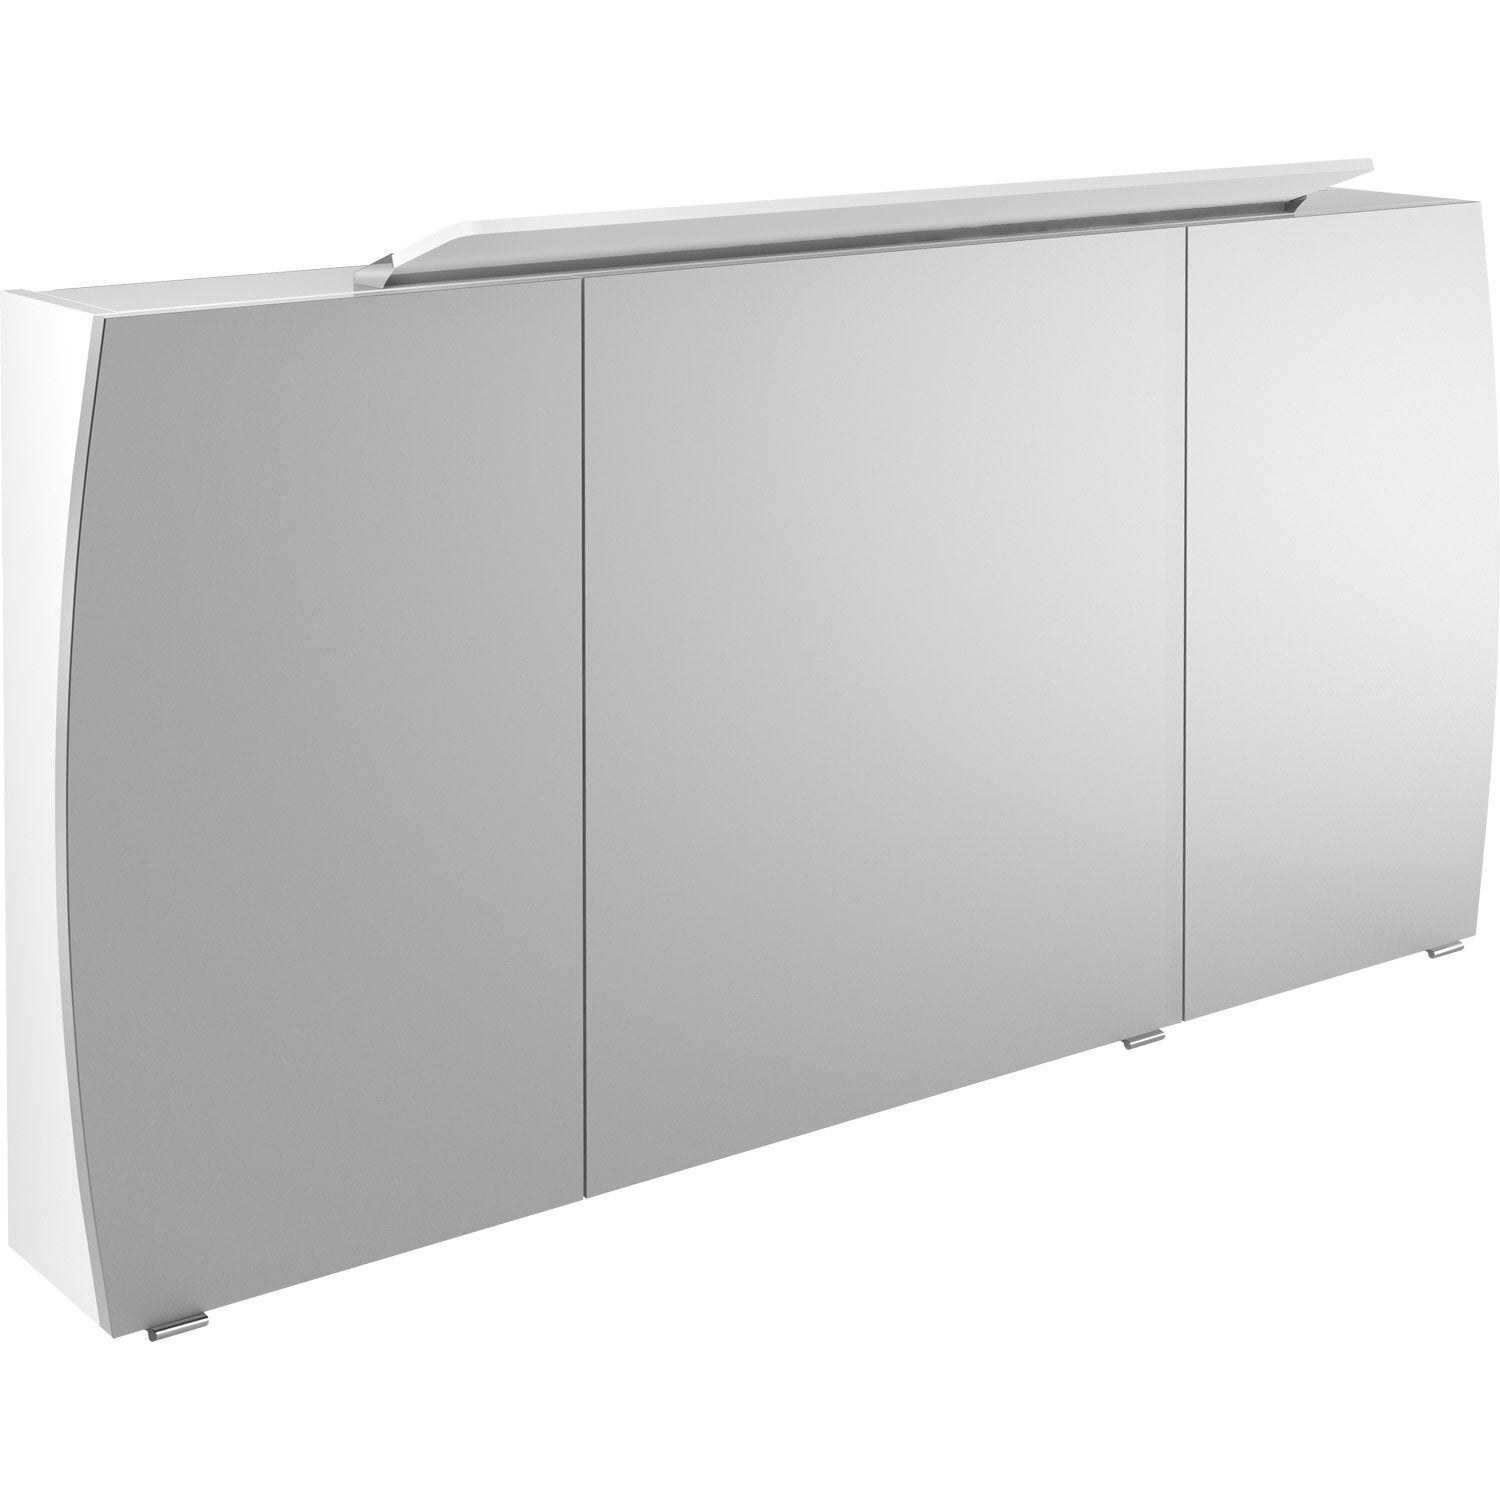 armoire de toilette lumineuse l 140 cm blanc image leroy merlin. Black Bedroom Furniture Sets. Home Design Ideas